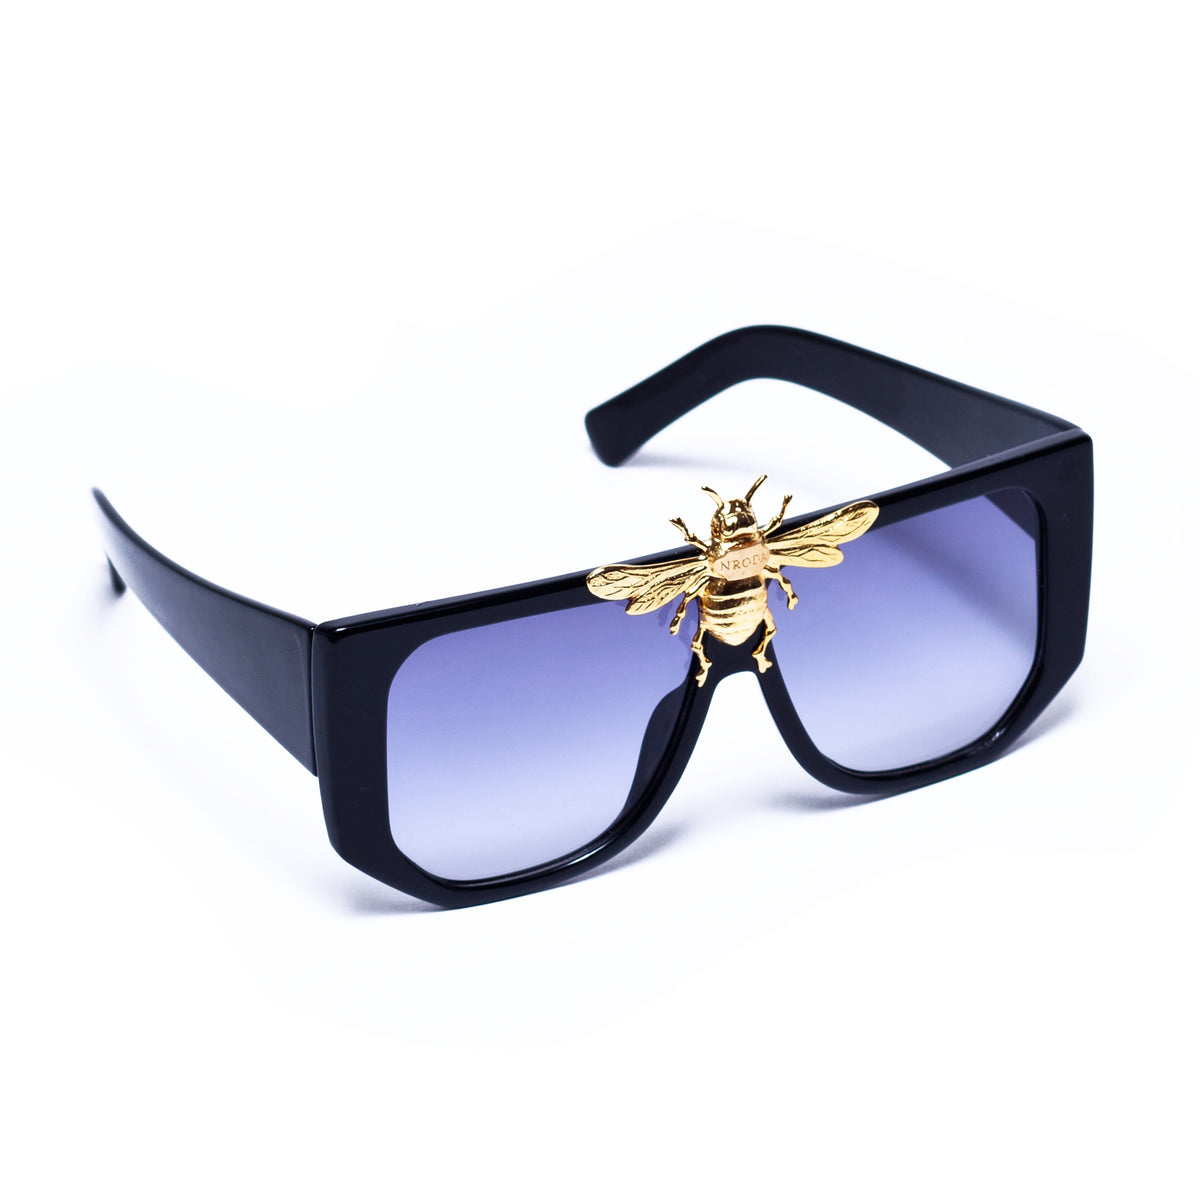 POWER MOVES  SUNNIES + OPTICS Sunglasses Collection, Tnemnroda man- NRODA